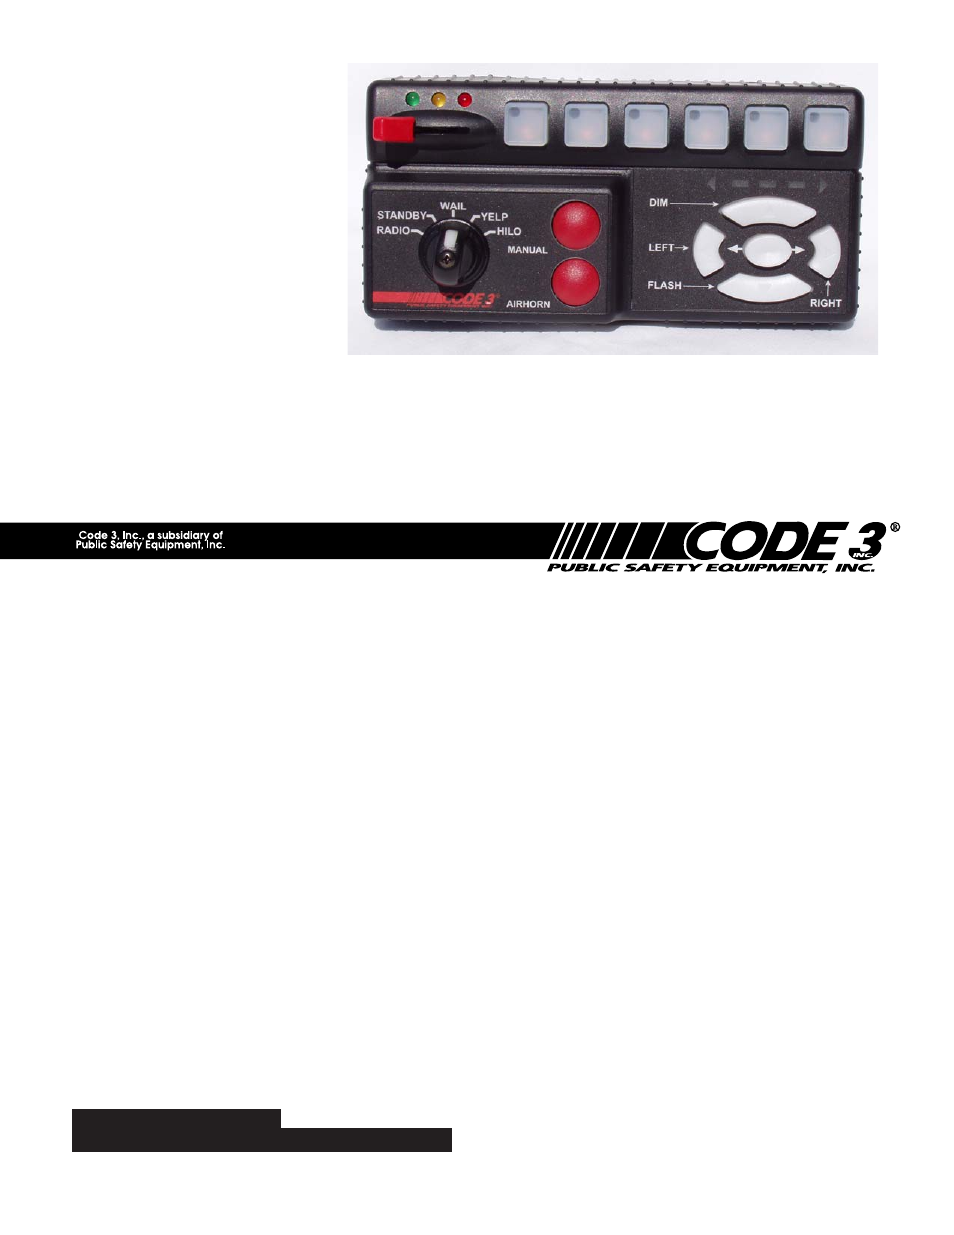 Code 3 RLS User Manual   28 pages